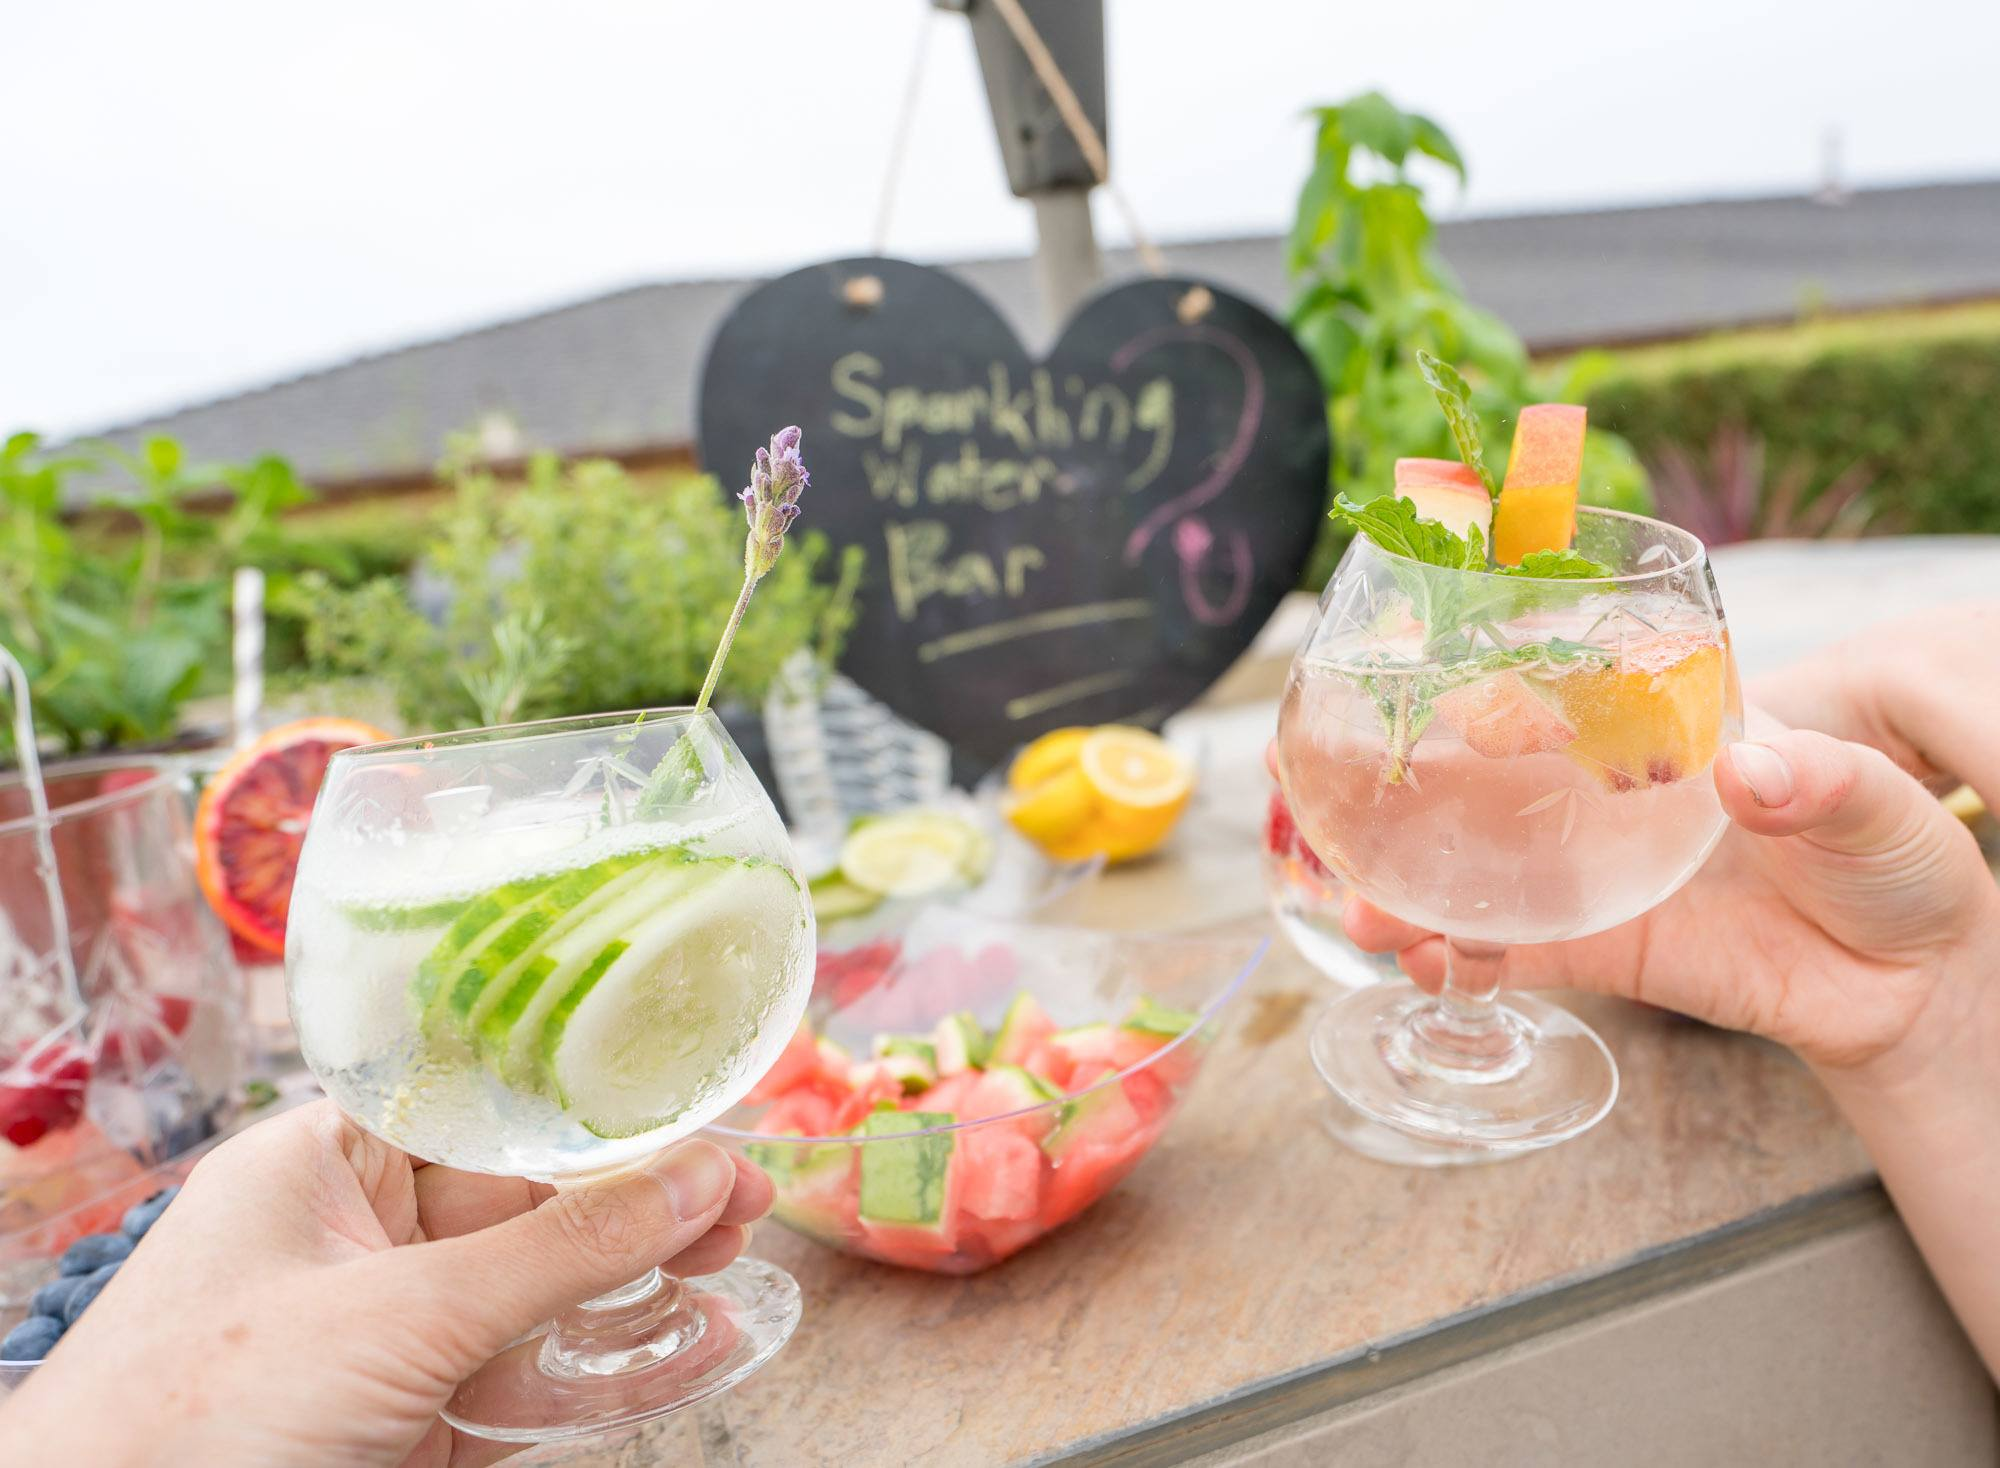 Make a sparkling water bar for a fun party idea.